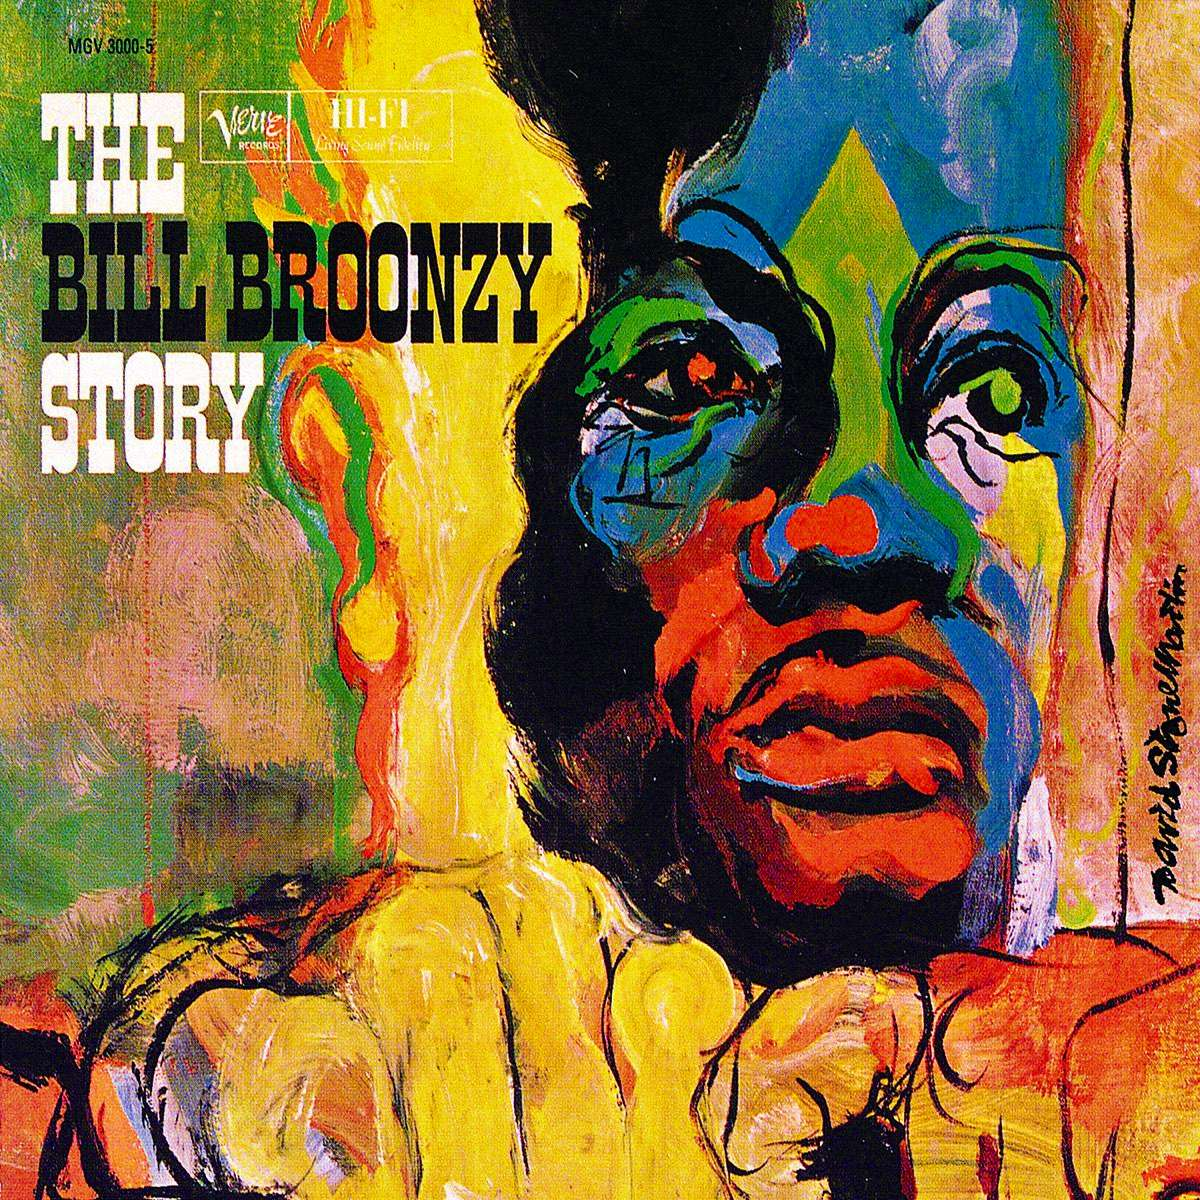 Билл Брунзи: The Bill Broonzy Story